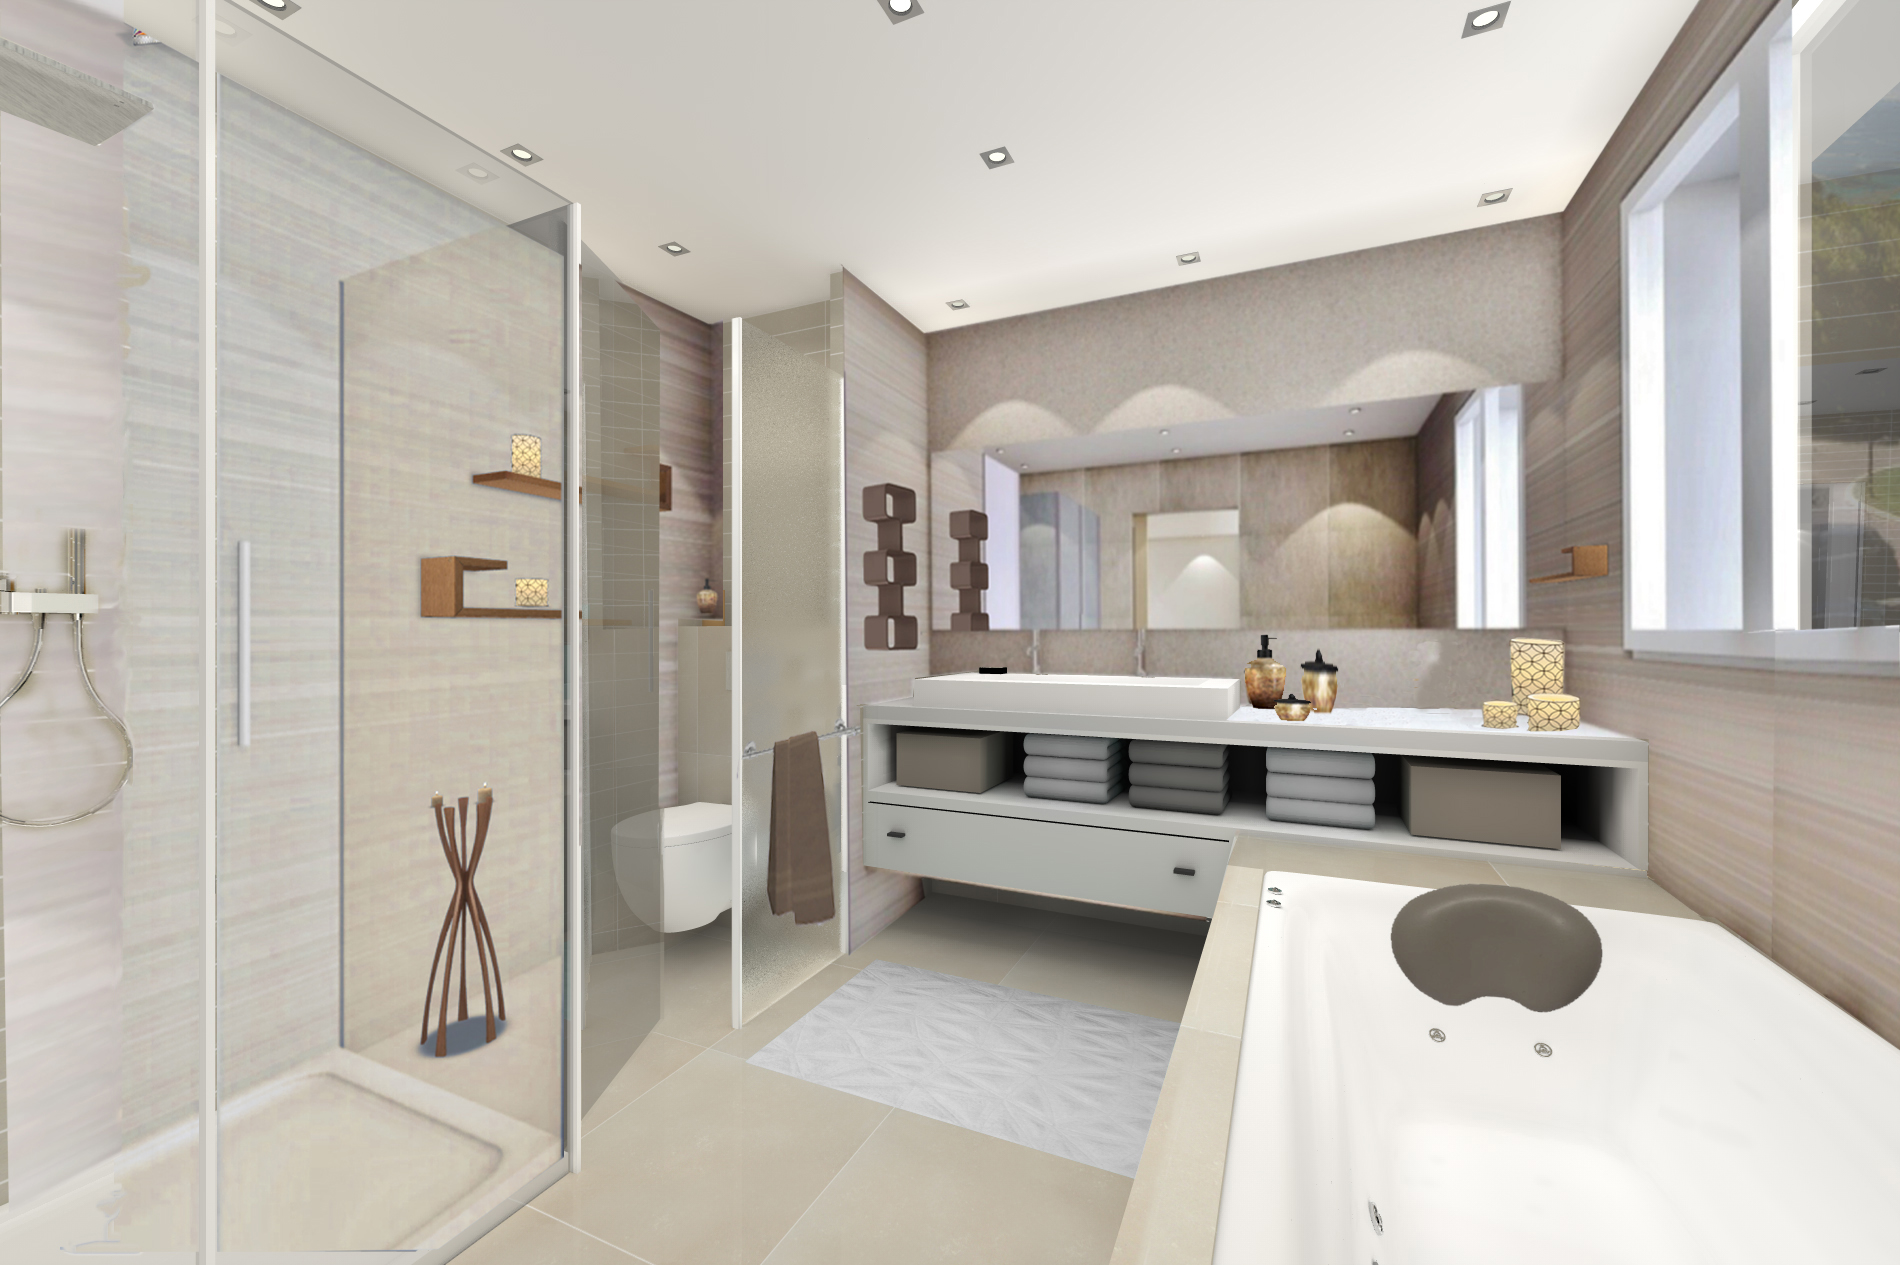 Cannes croisette anahome immobilier anahome immobilier for Idee chambre parentale avec salle de bain